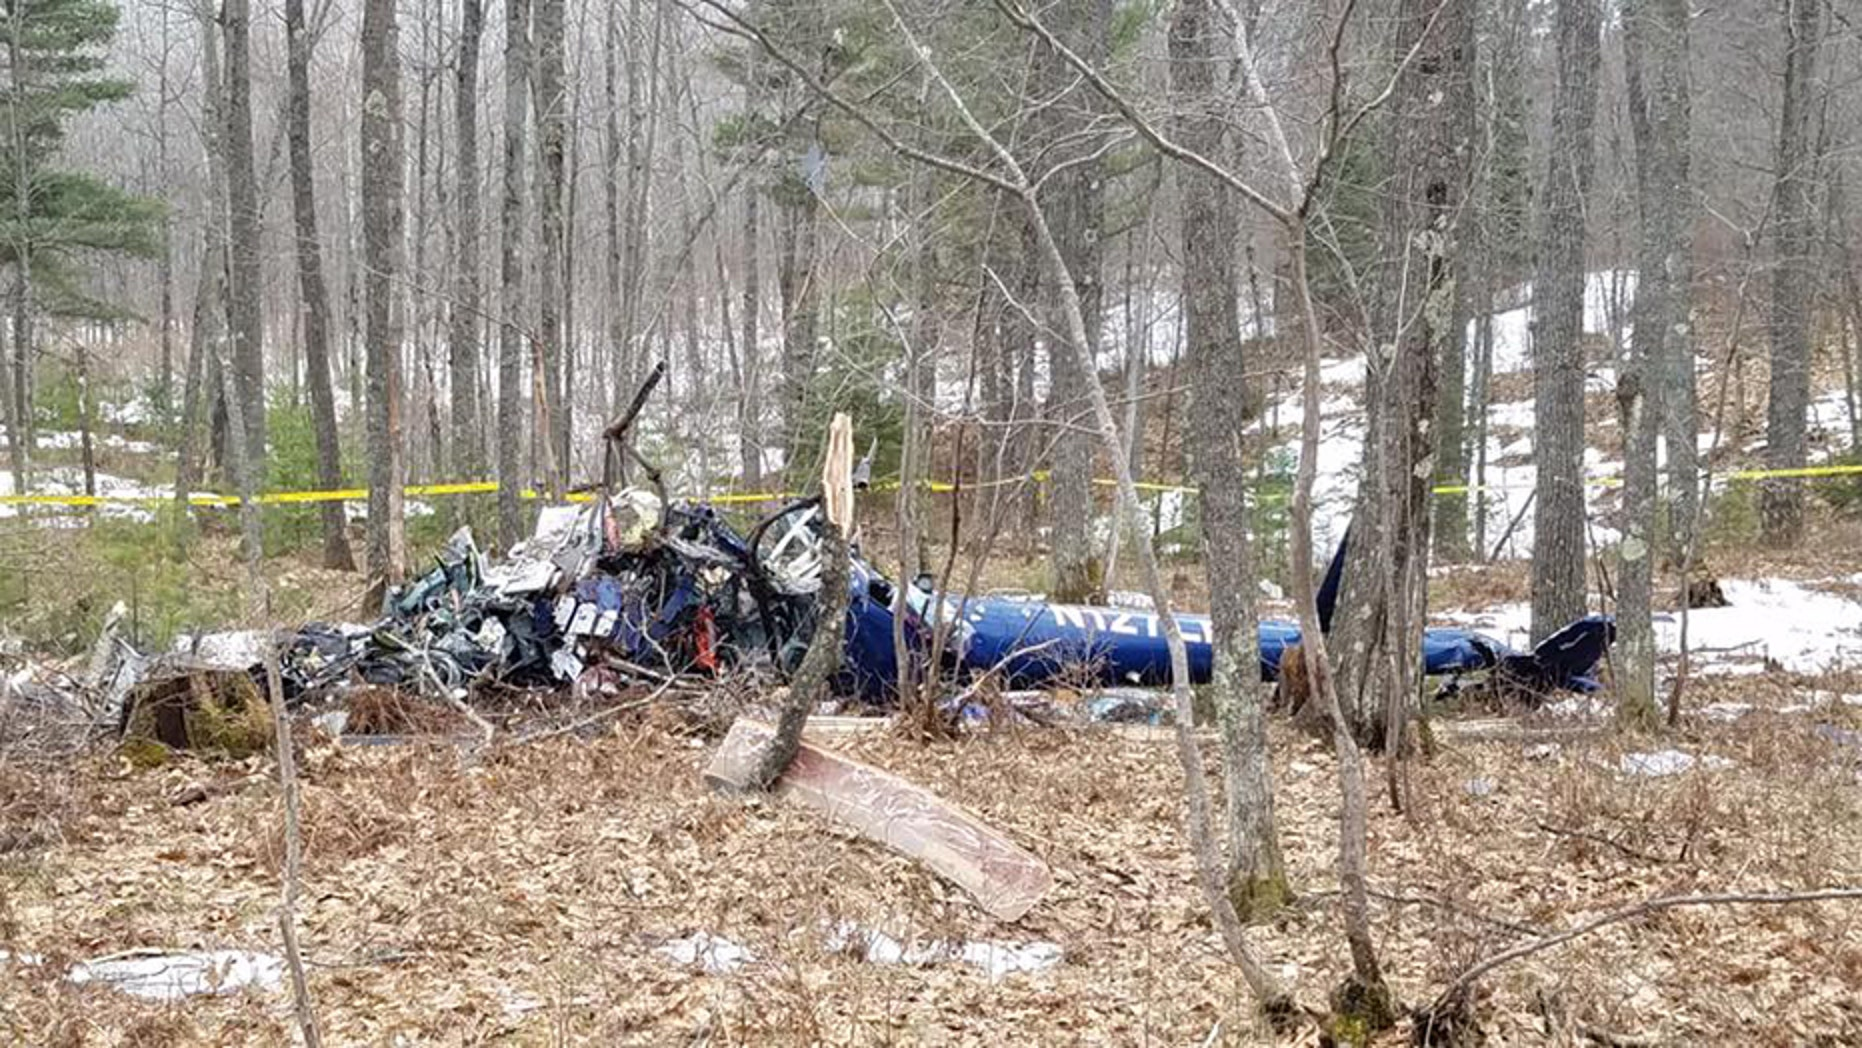 A medical helicopter crashed in a heavily wooded area in northern Wisconsin, killing all three people on board.